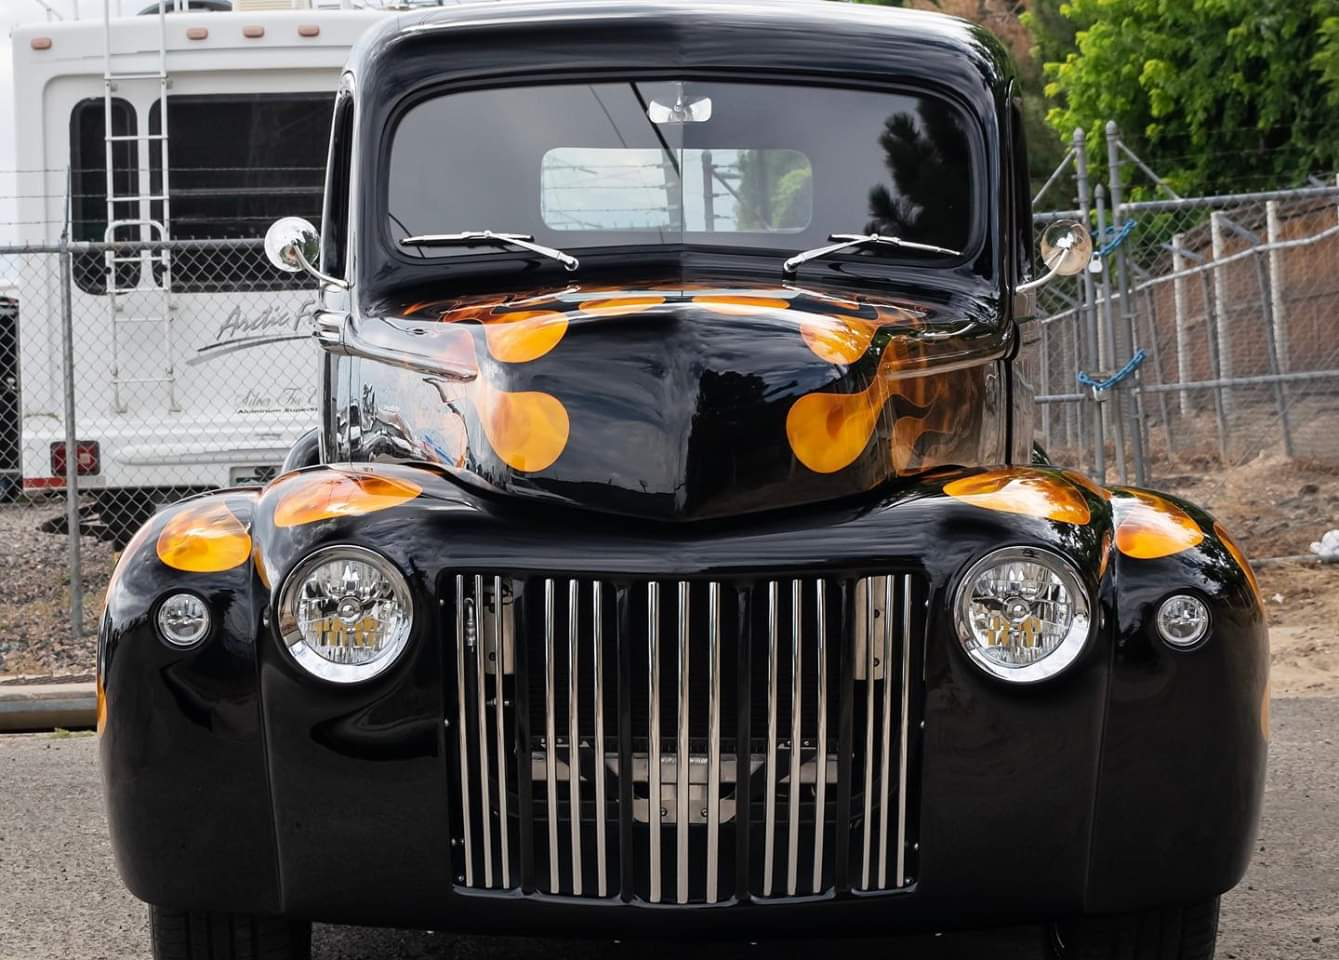 1946 Ford Pickup Truck With 535 HP 8.jpg